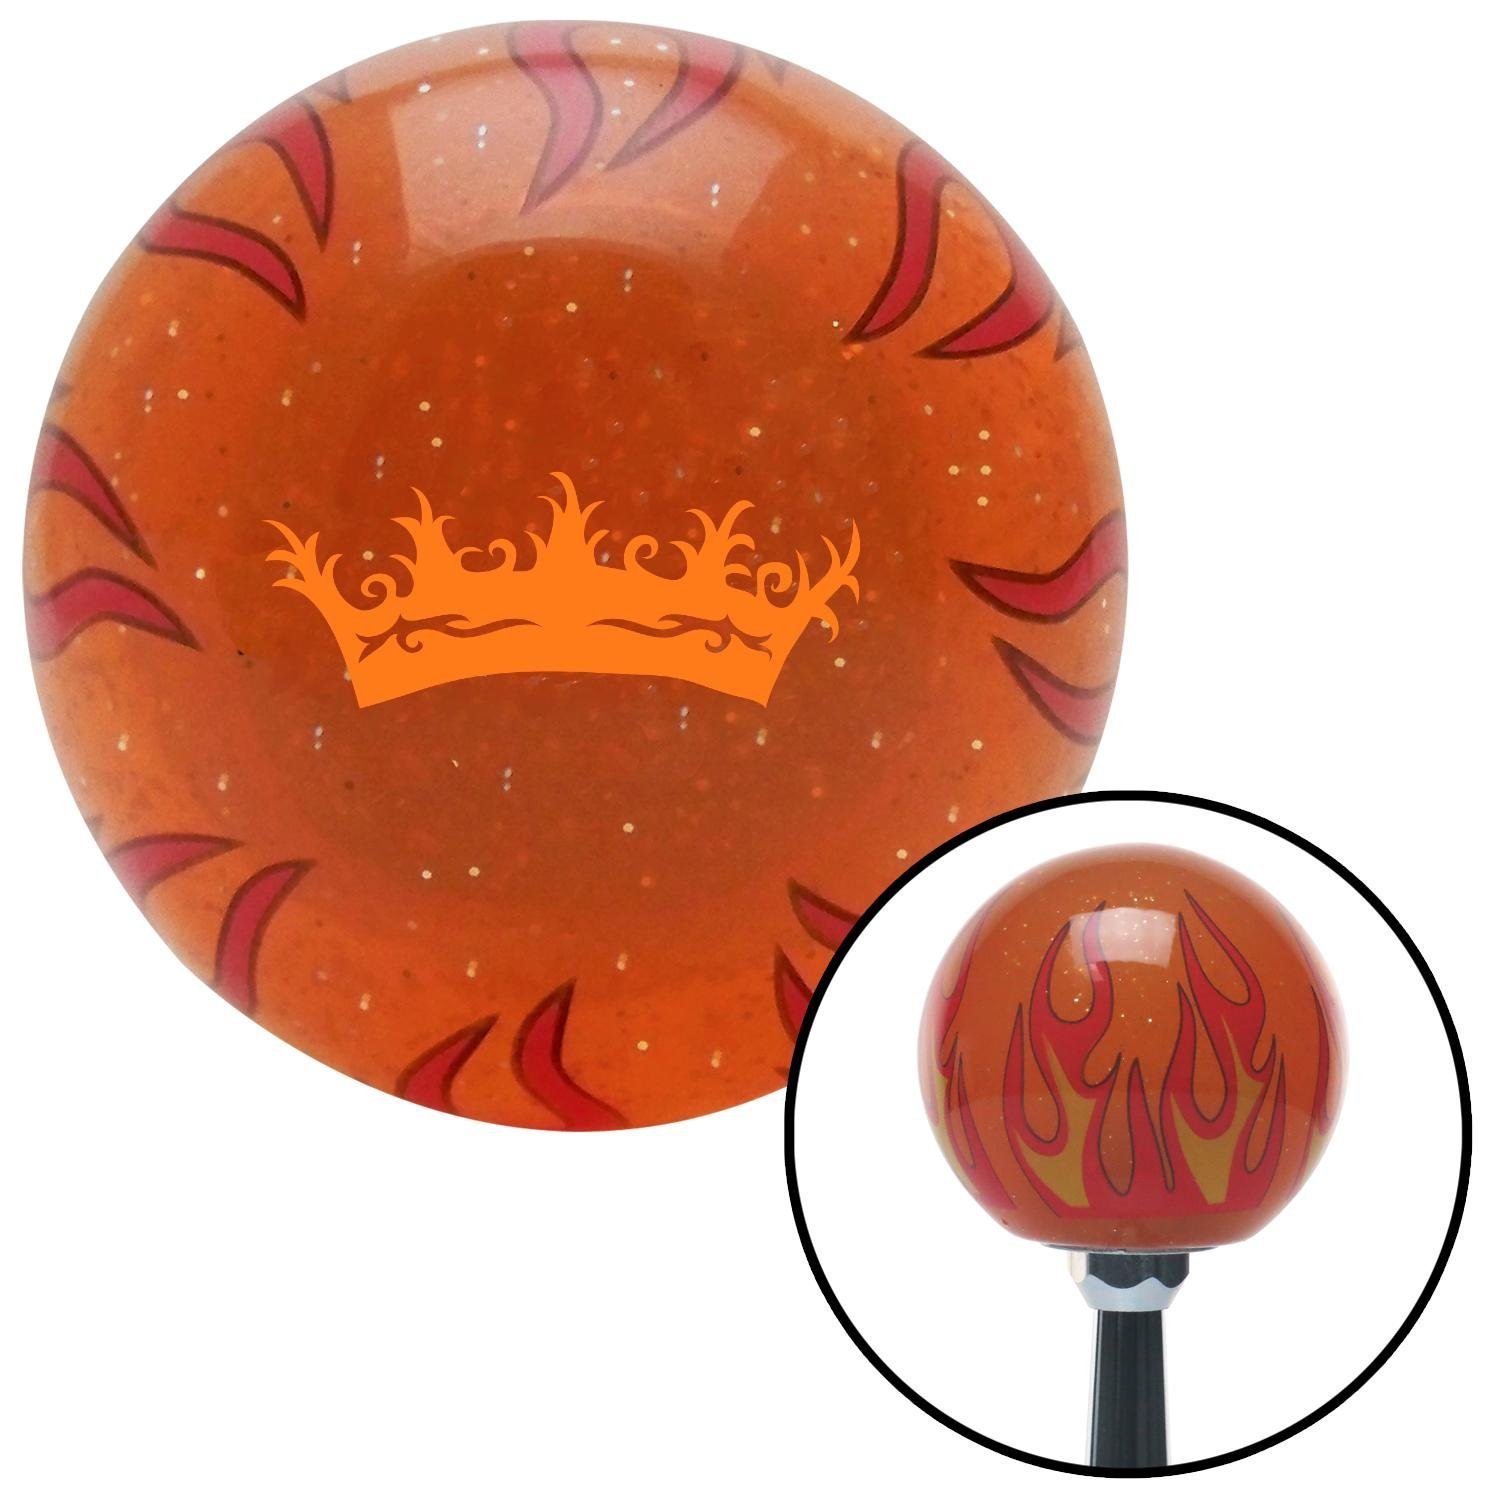 American Shifter 43735 Orange Metal Flake Shift Knob with 16mm x 1.5 Insert Black Abstract Gecko